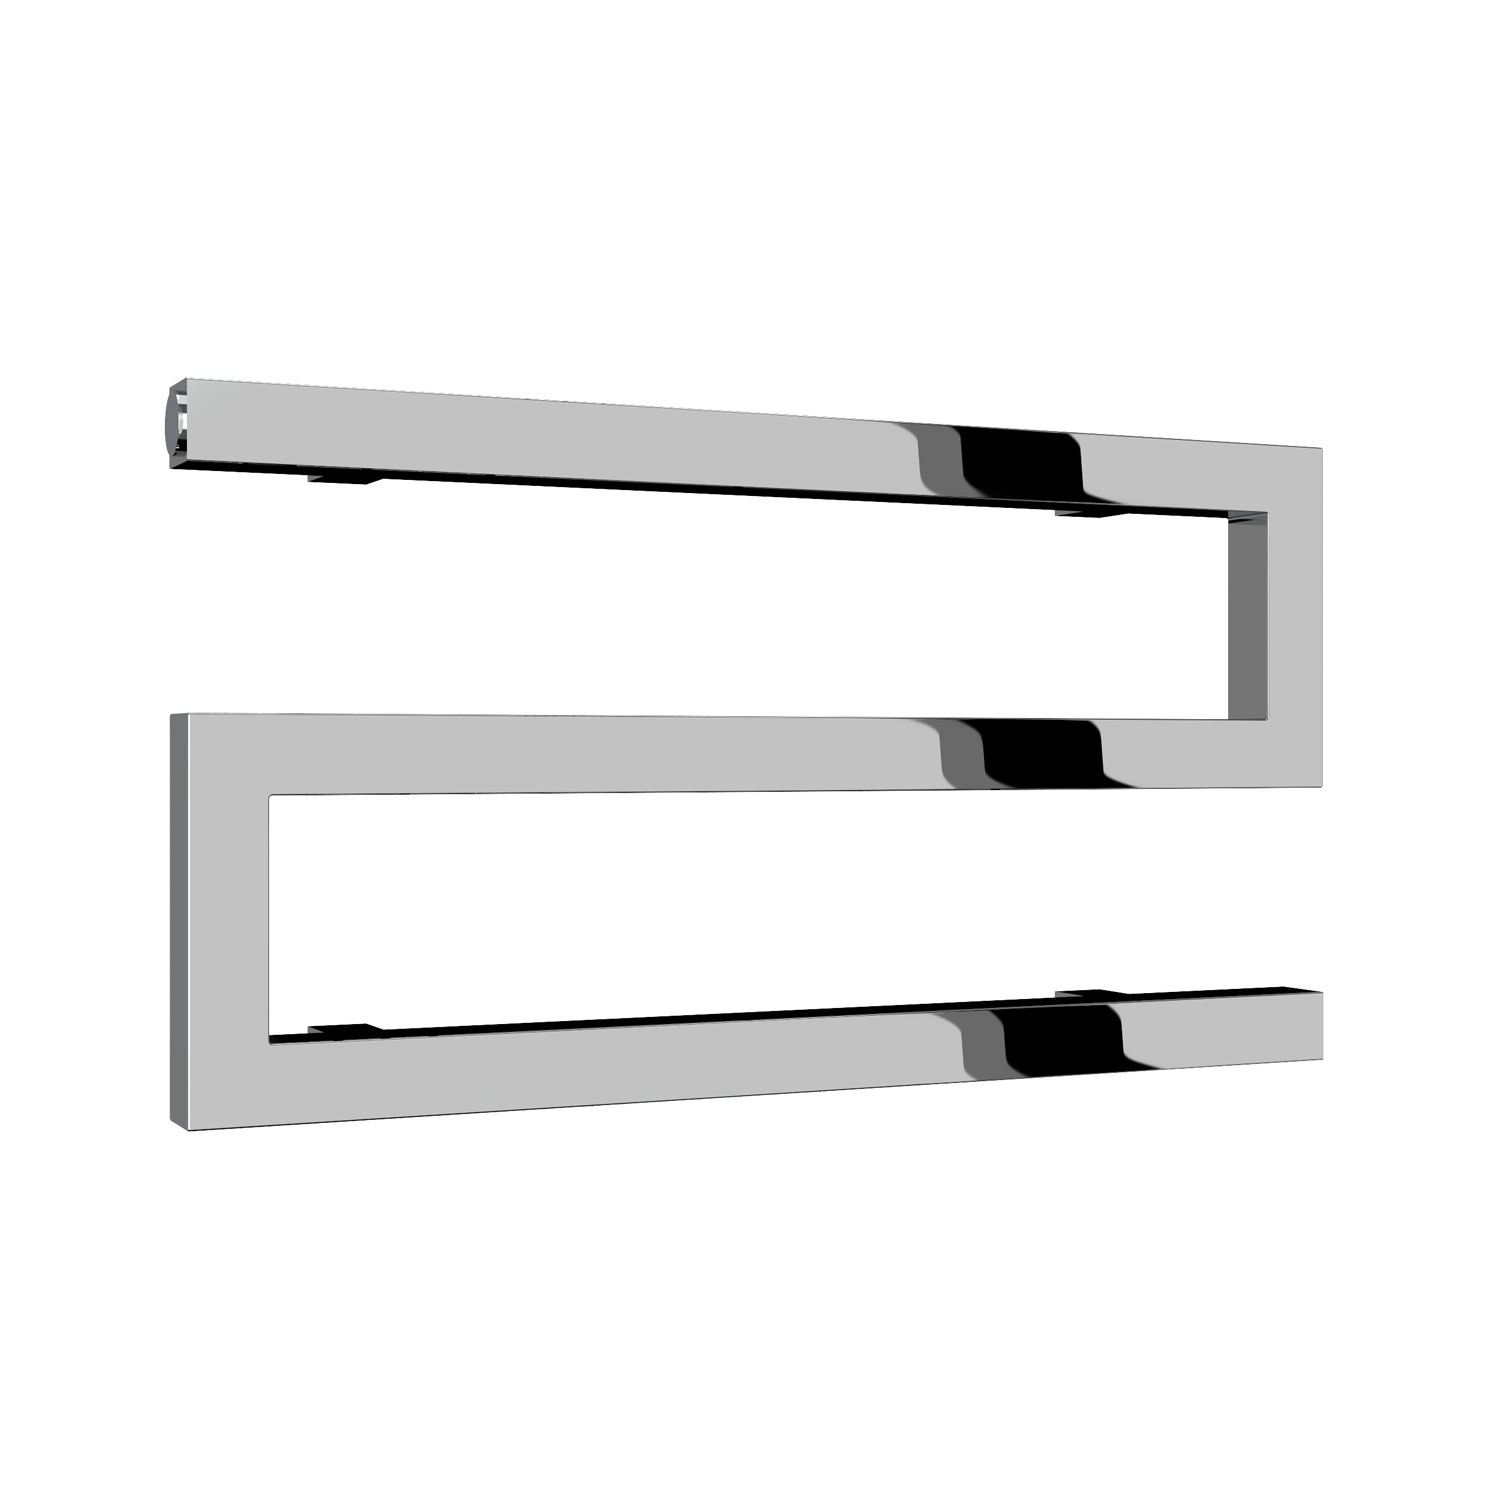 Reina Serpe Designer Heated Towel Rail 270mm H x 500mm W Chrome